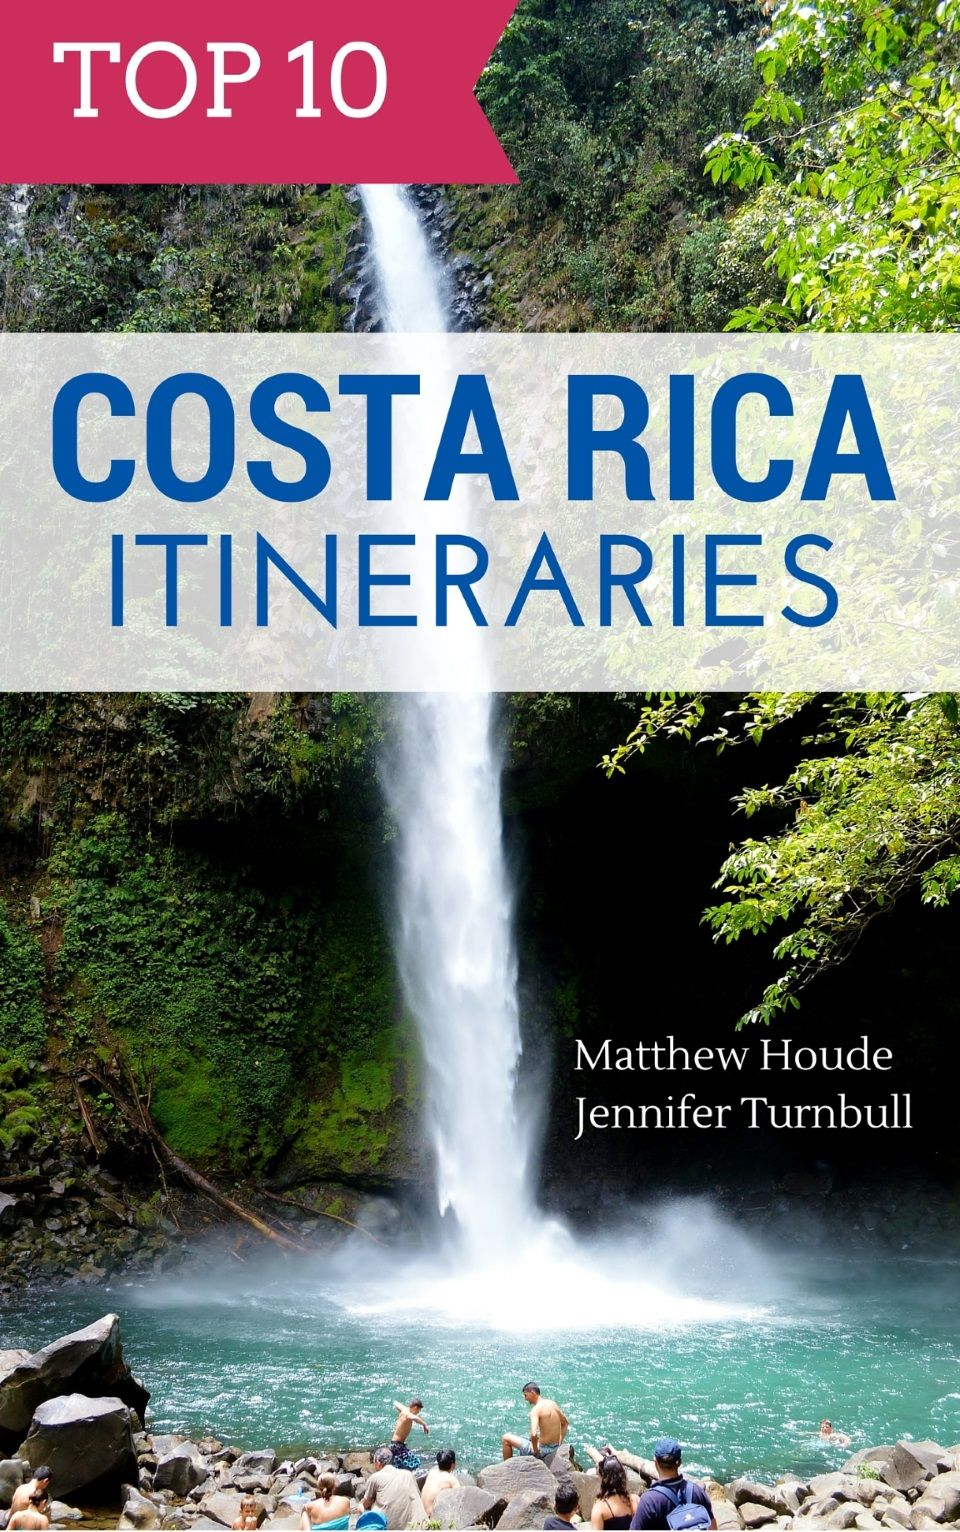 Top 10 Costa Rica Itineraries: A Behind-the-Scenes Look at Our New Travel Guide. Read more here: http://www.twoweeksincostarica.com/top-10-costa-rica-itineraries/ Only $3.99 on Amazon! #guidebook #CostaRica